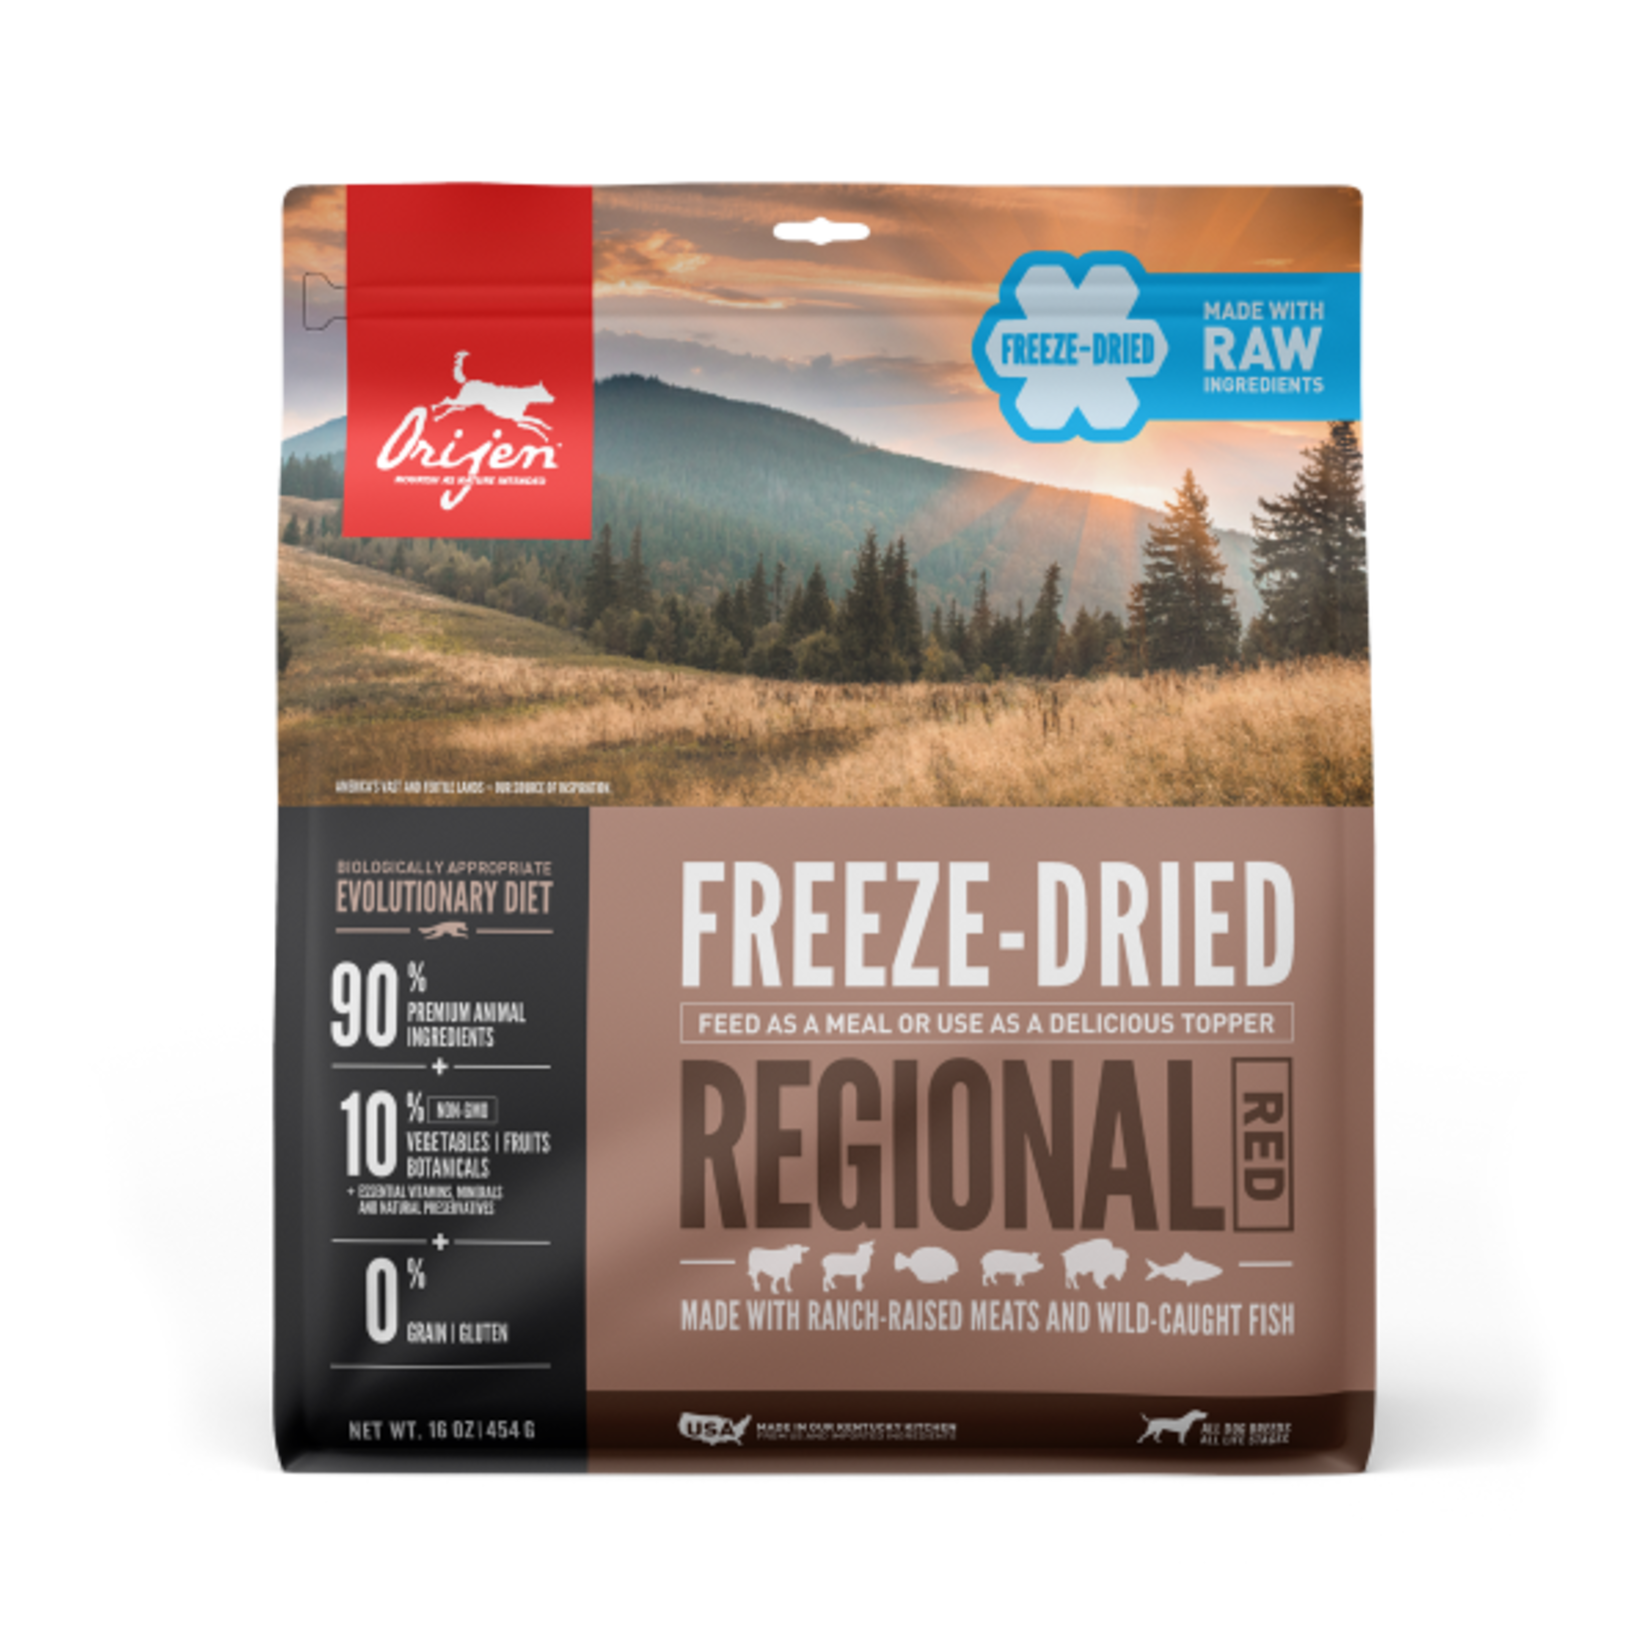 Champion Pet Foods Orijen Dog Freeze-dried Regional Red Diet 16 OZ